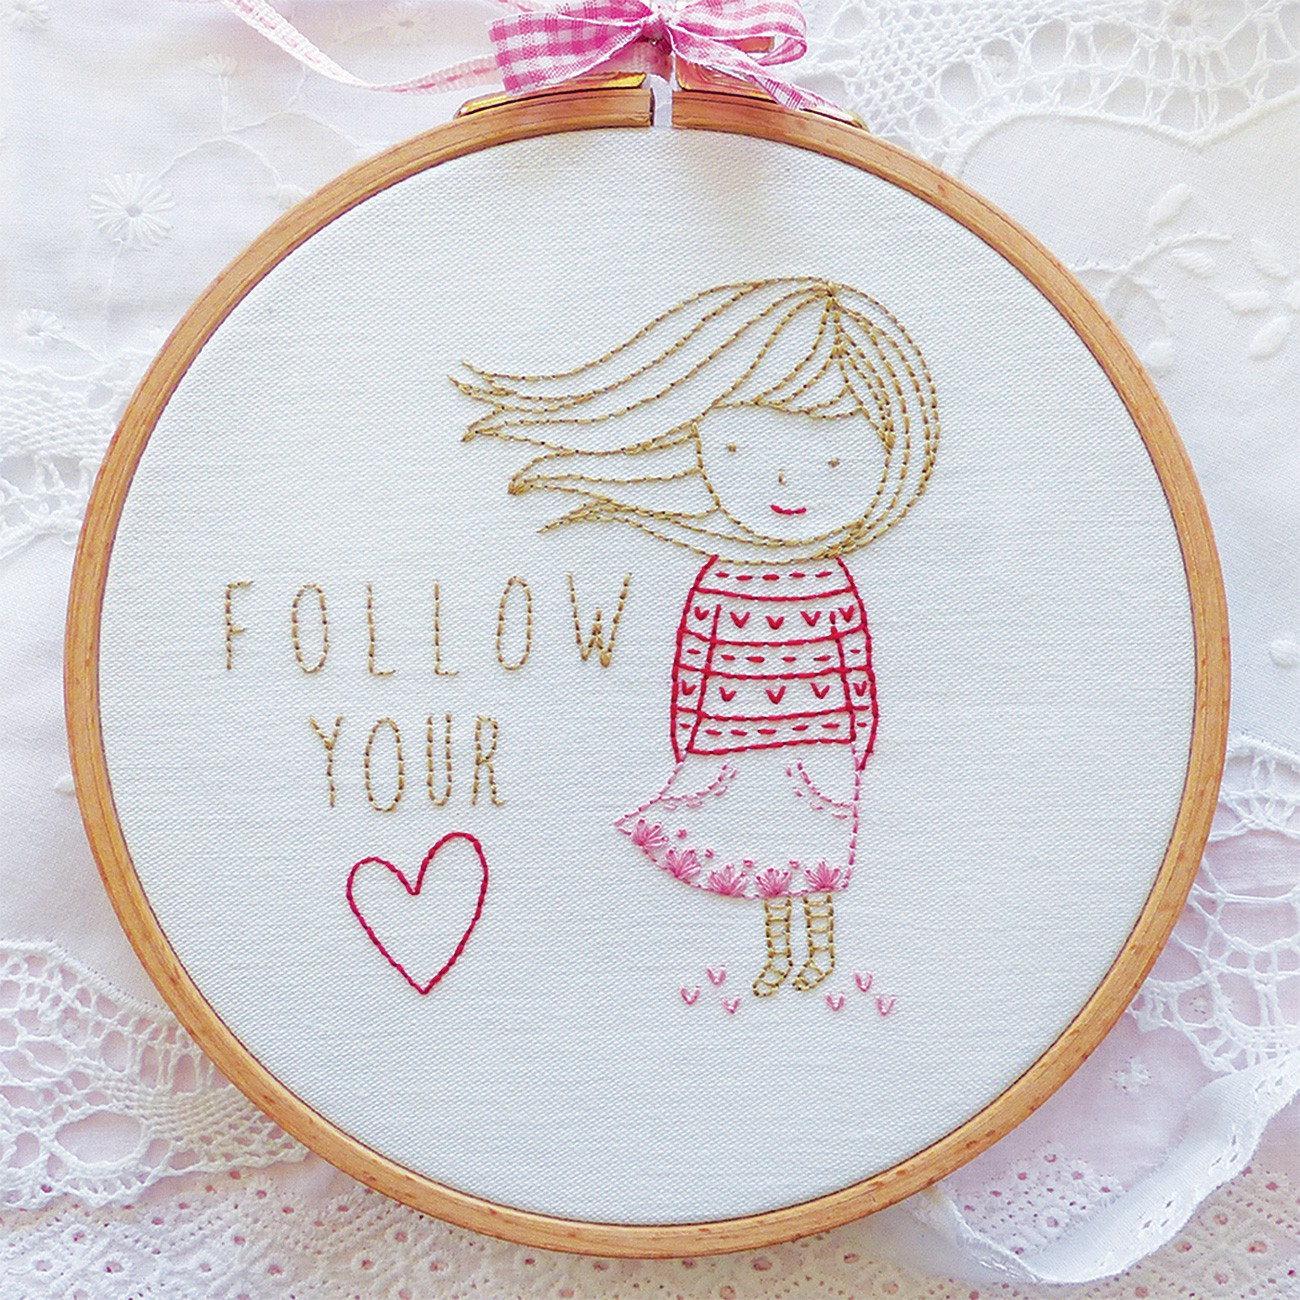 Follow your heart embroidery kit crinklelove